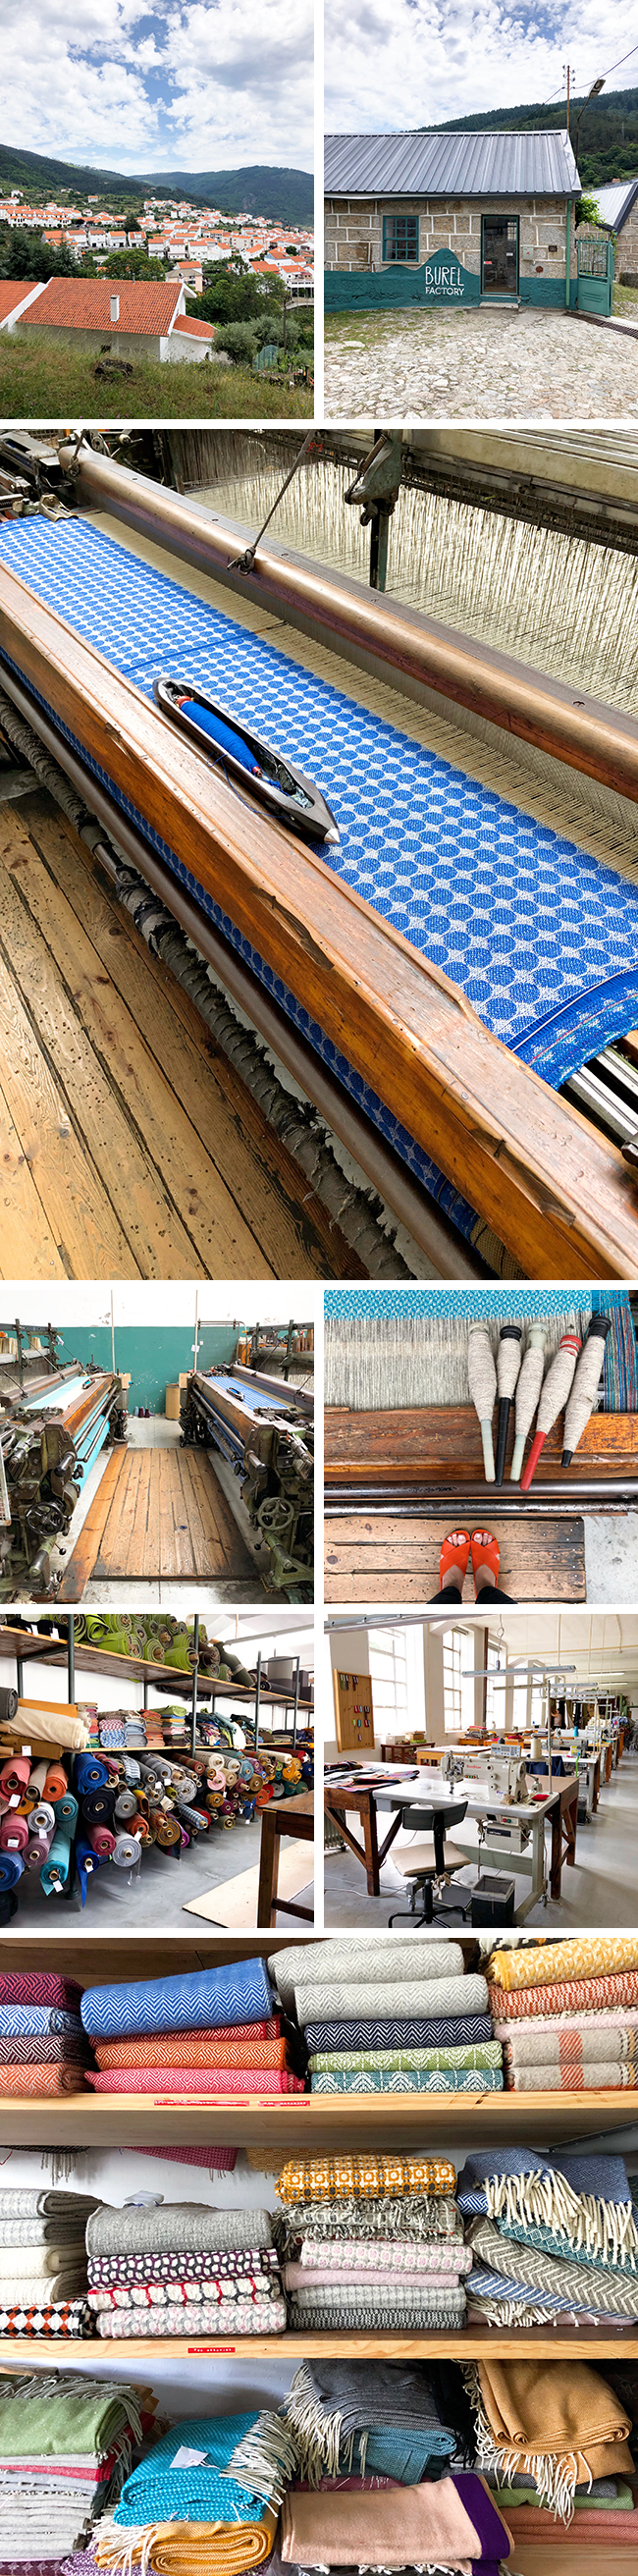 Portugal guide: Burel wool factory tour, blankets